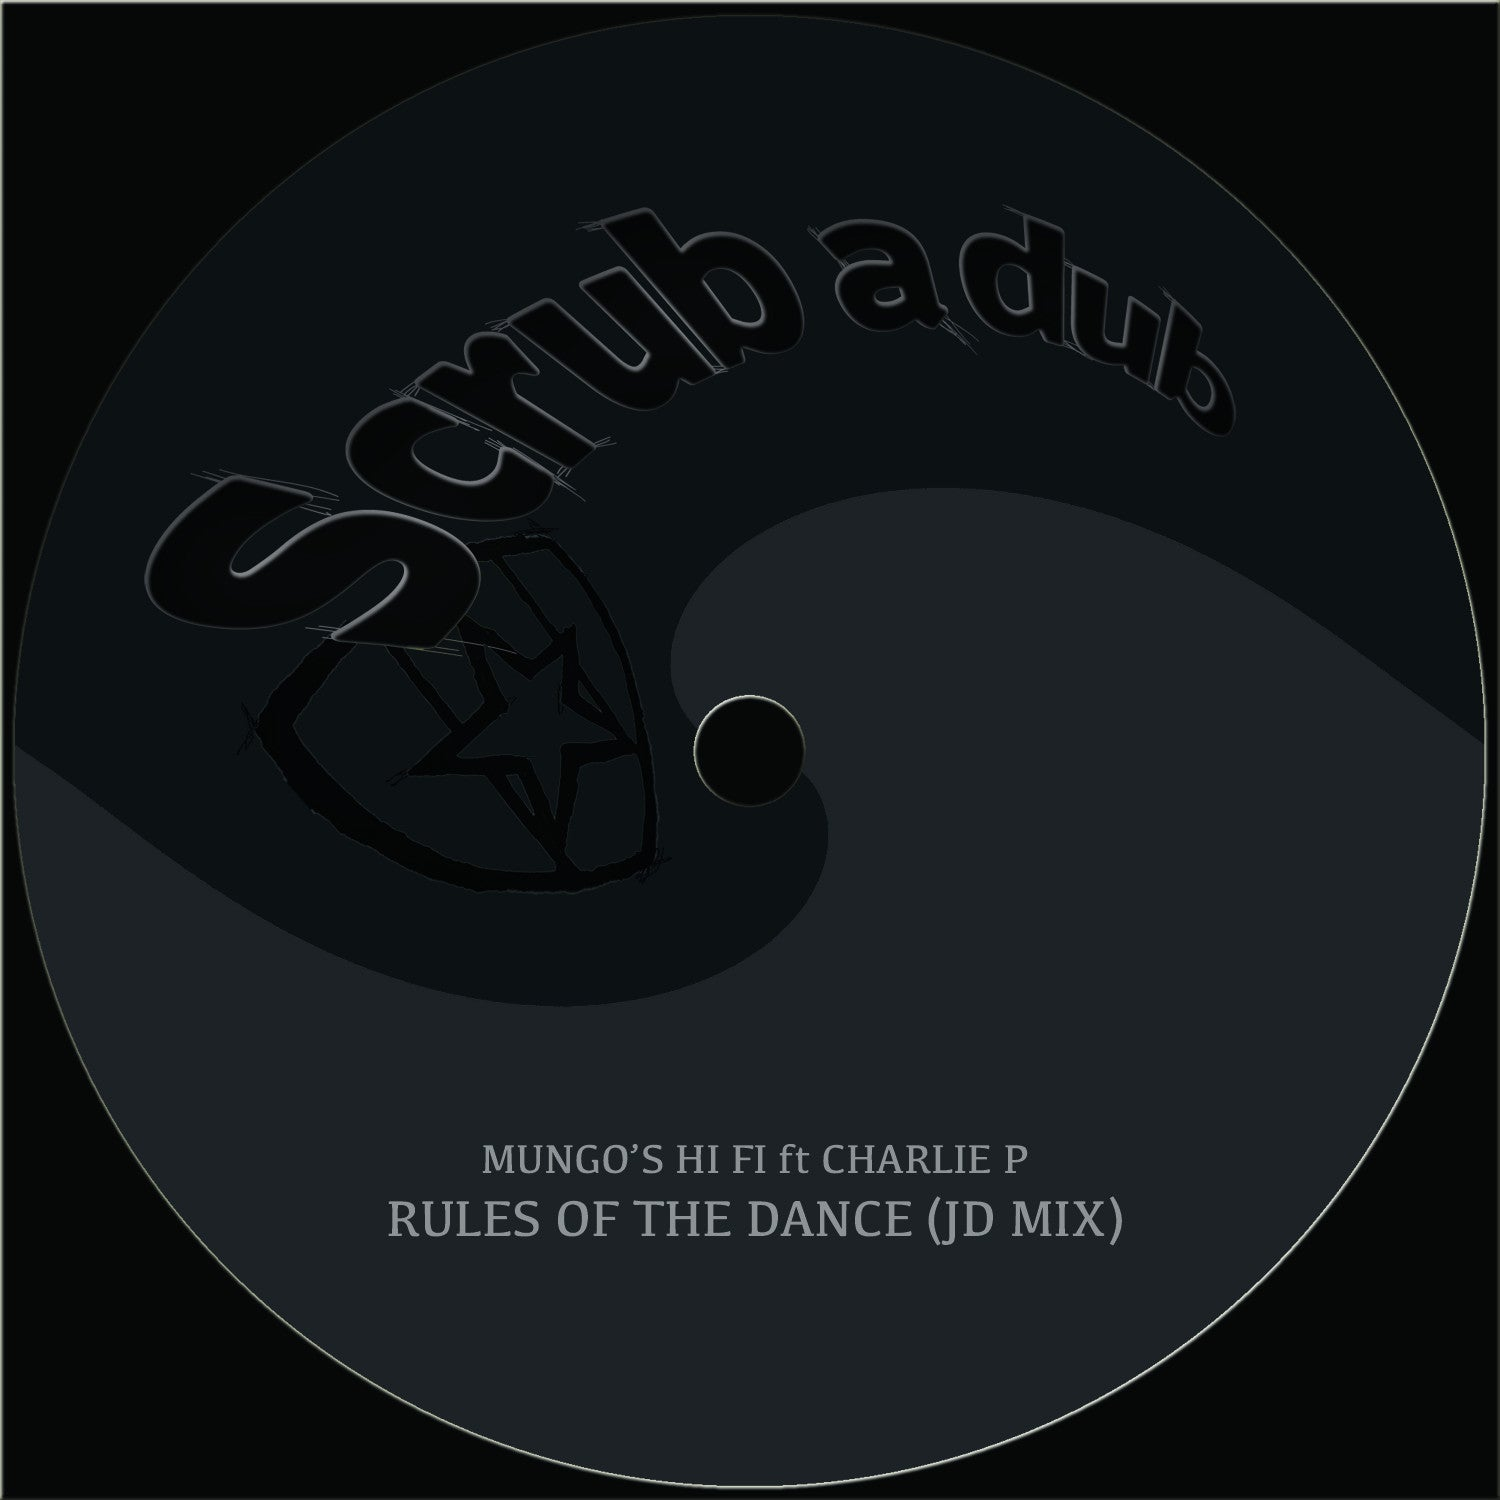 Mungo's Hi Fi - Rules of the Dance (feat. Charlie P) [JD Mix] , Vinyl - Scrub A Dub, Unearthed Sounds